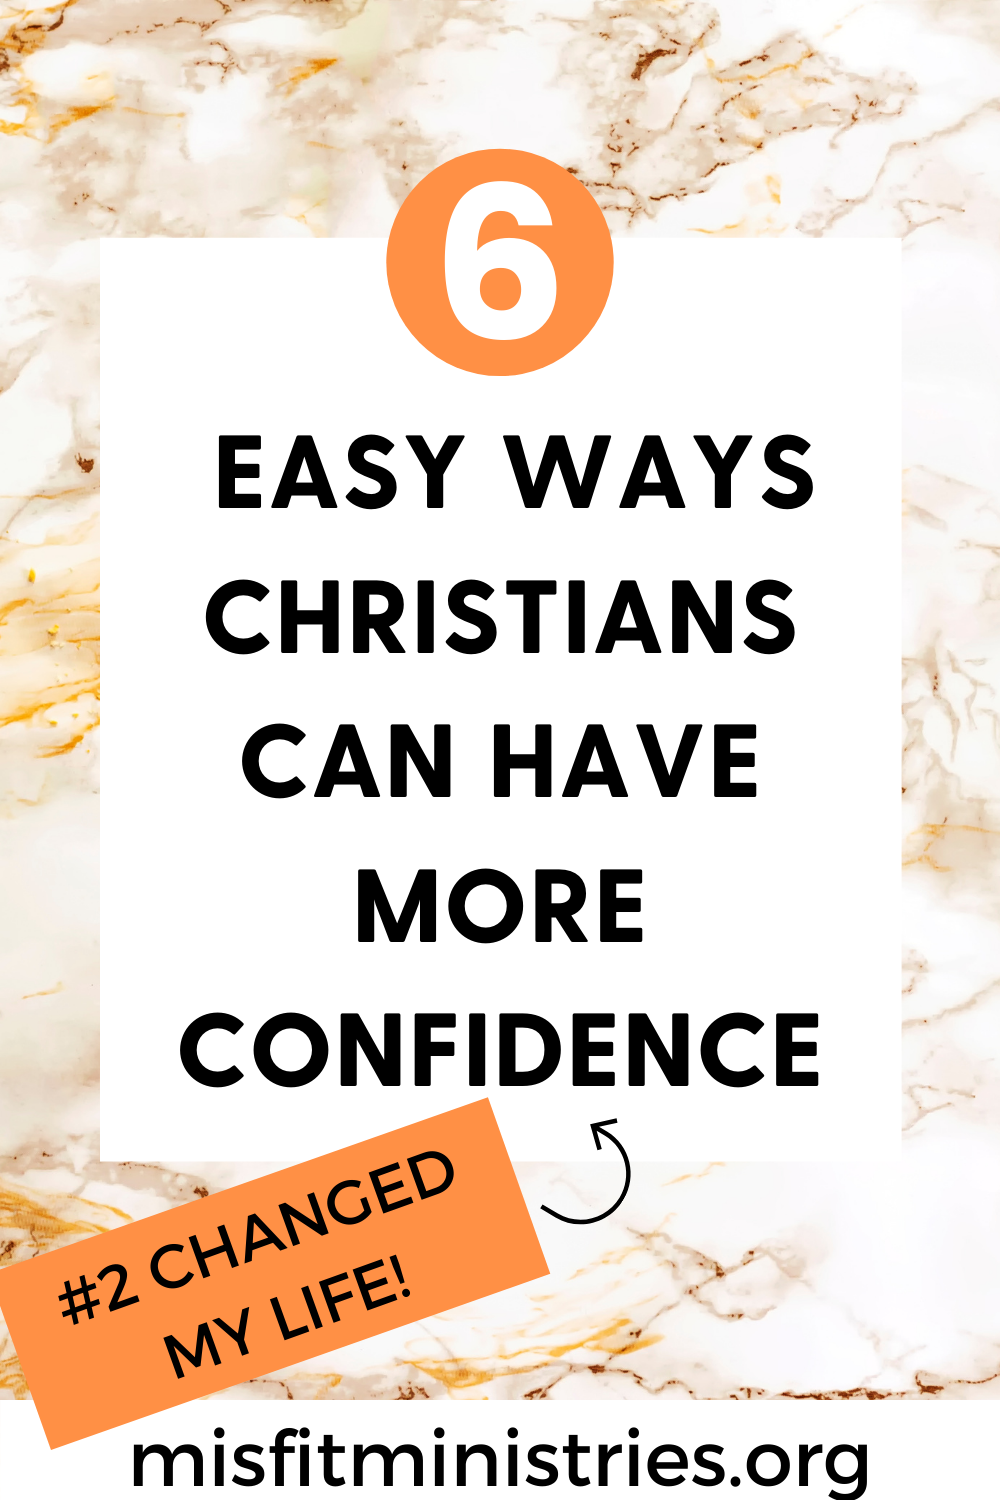 HAVE MORE CONFIDENCE